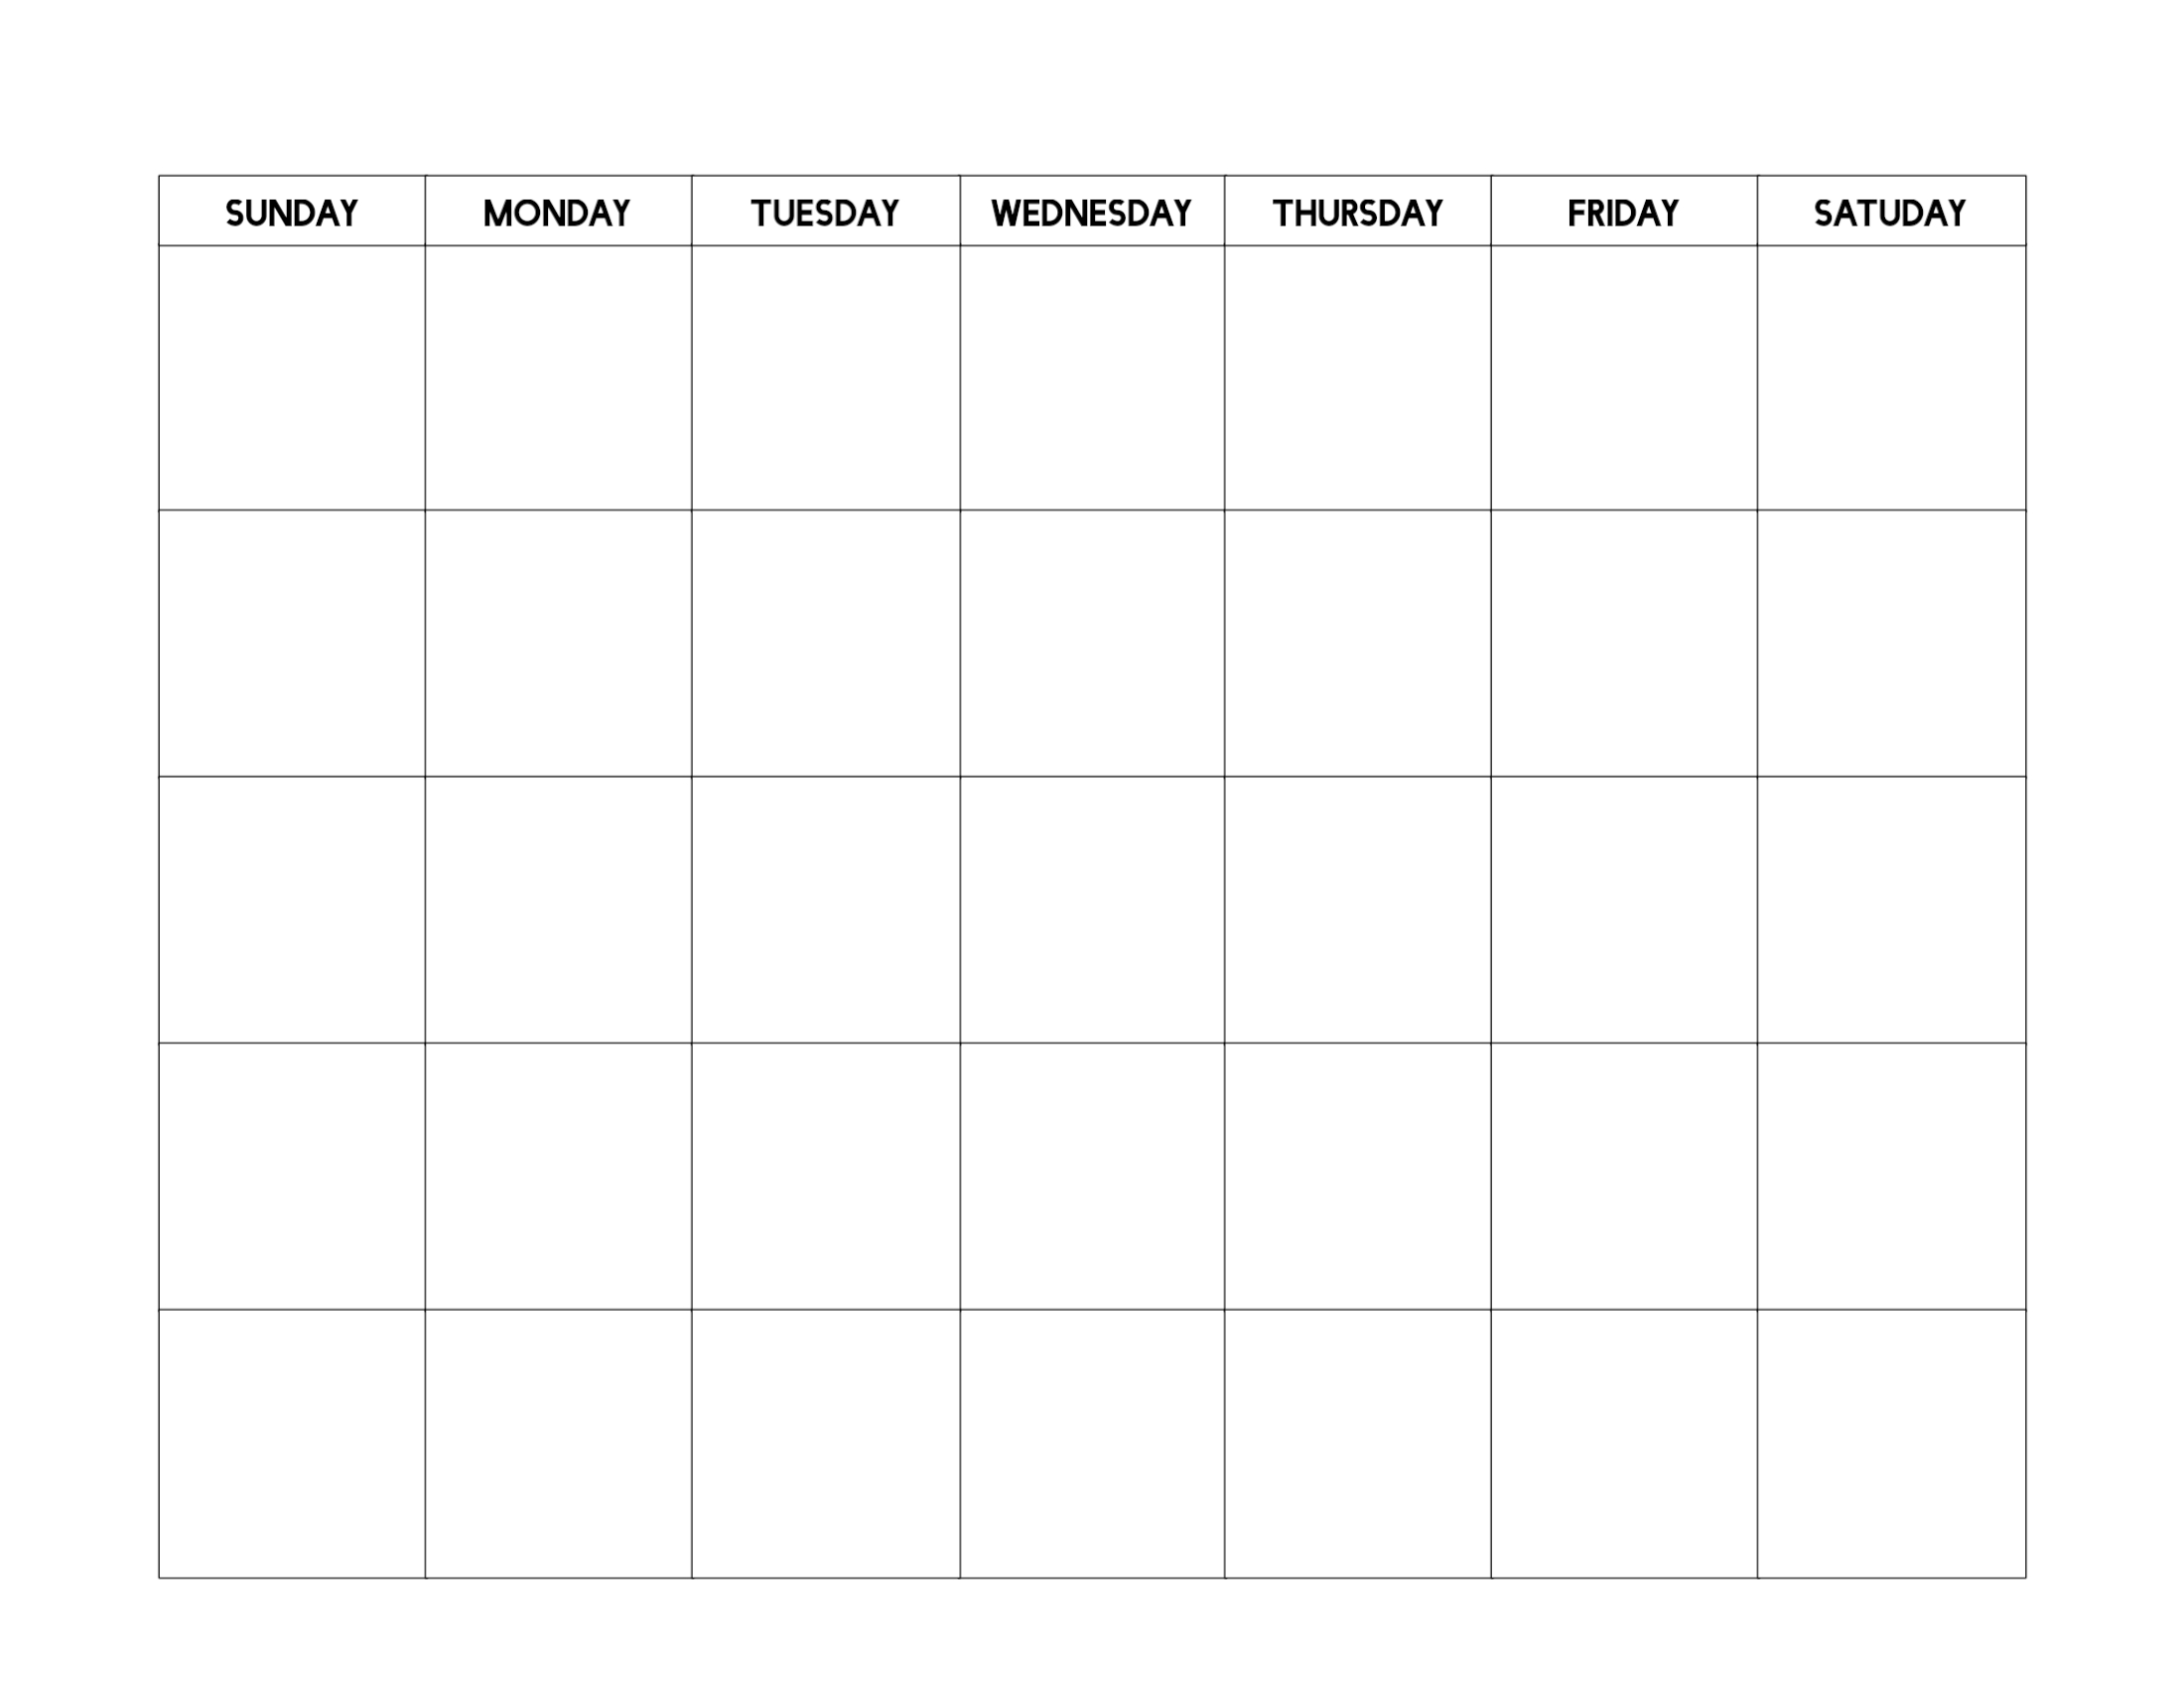 Free Printable Blank Calendar Template  Paper Trail Design with regard to Fill In Blank Calendar